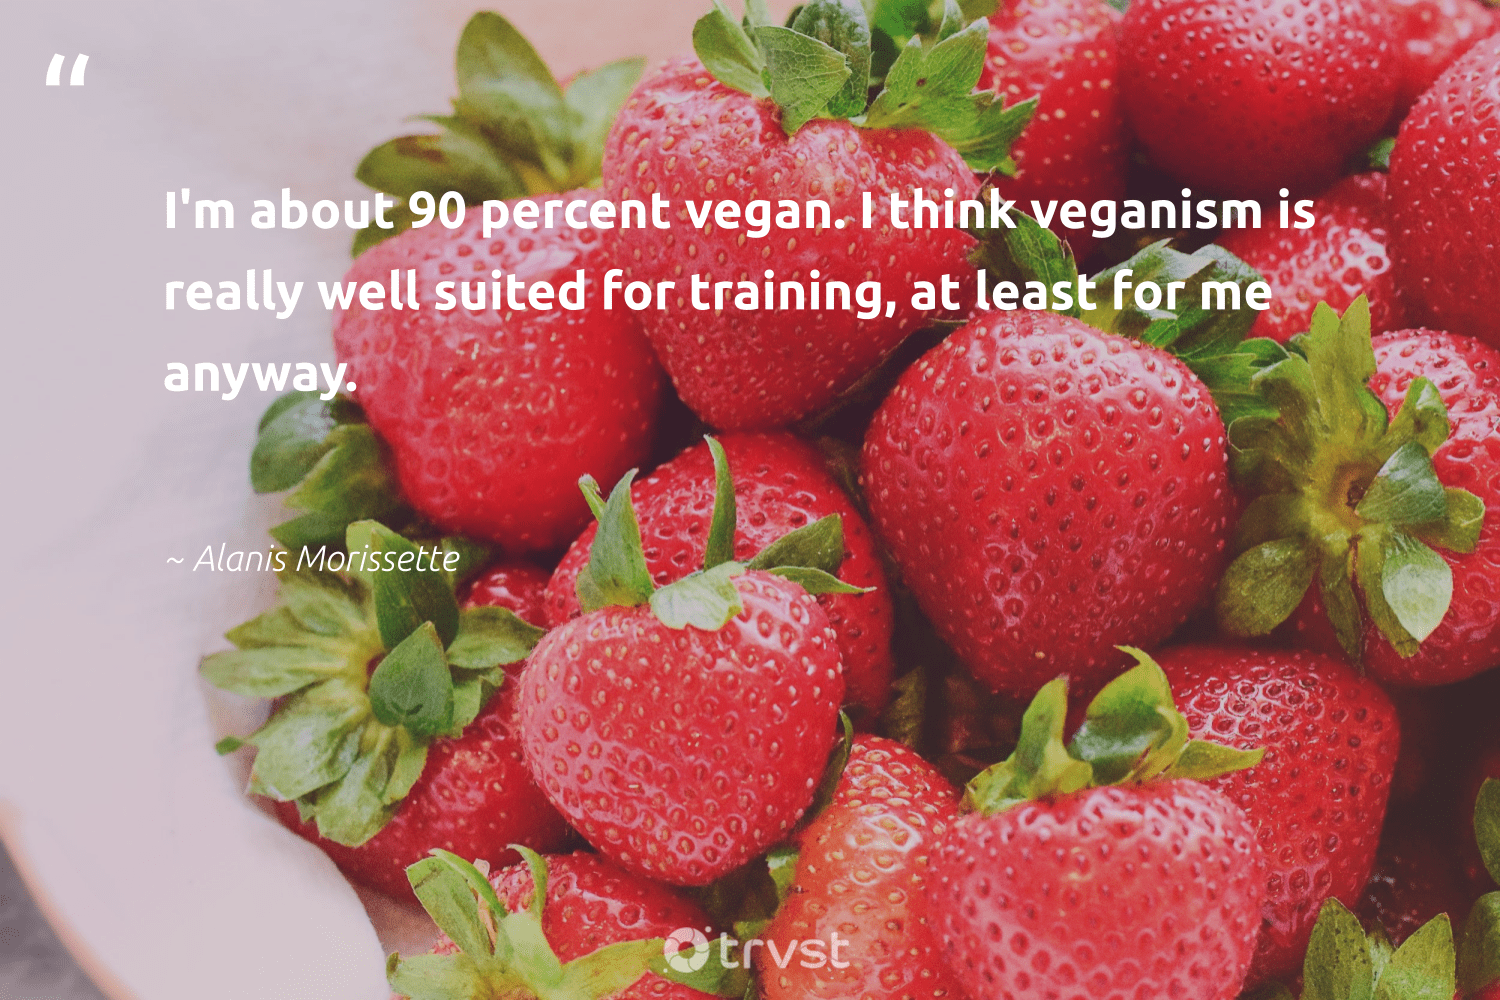 """I'm about 90 percent vegan. I think veganism is really well suited for training, at least for me anyway.""  - Alanis Morissette #trvst #quotes #vegan #veggie #sustainability #green #socialchange #vegetarian #fashion #gogreen #bethechange #veganfoodshare"